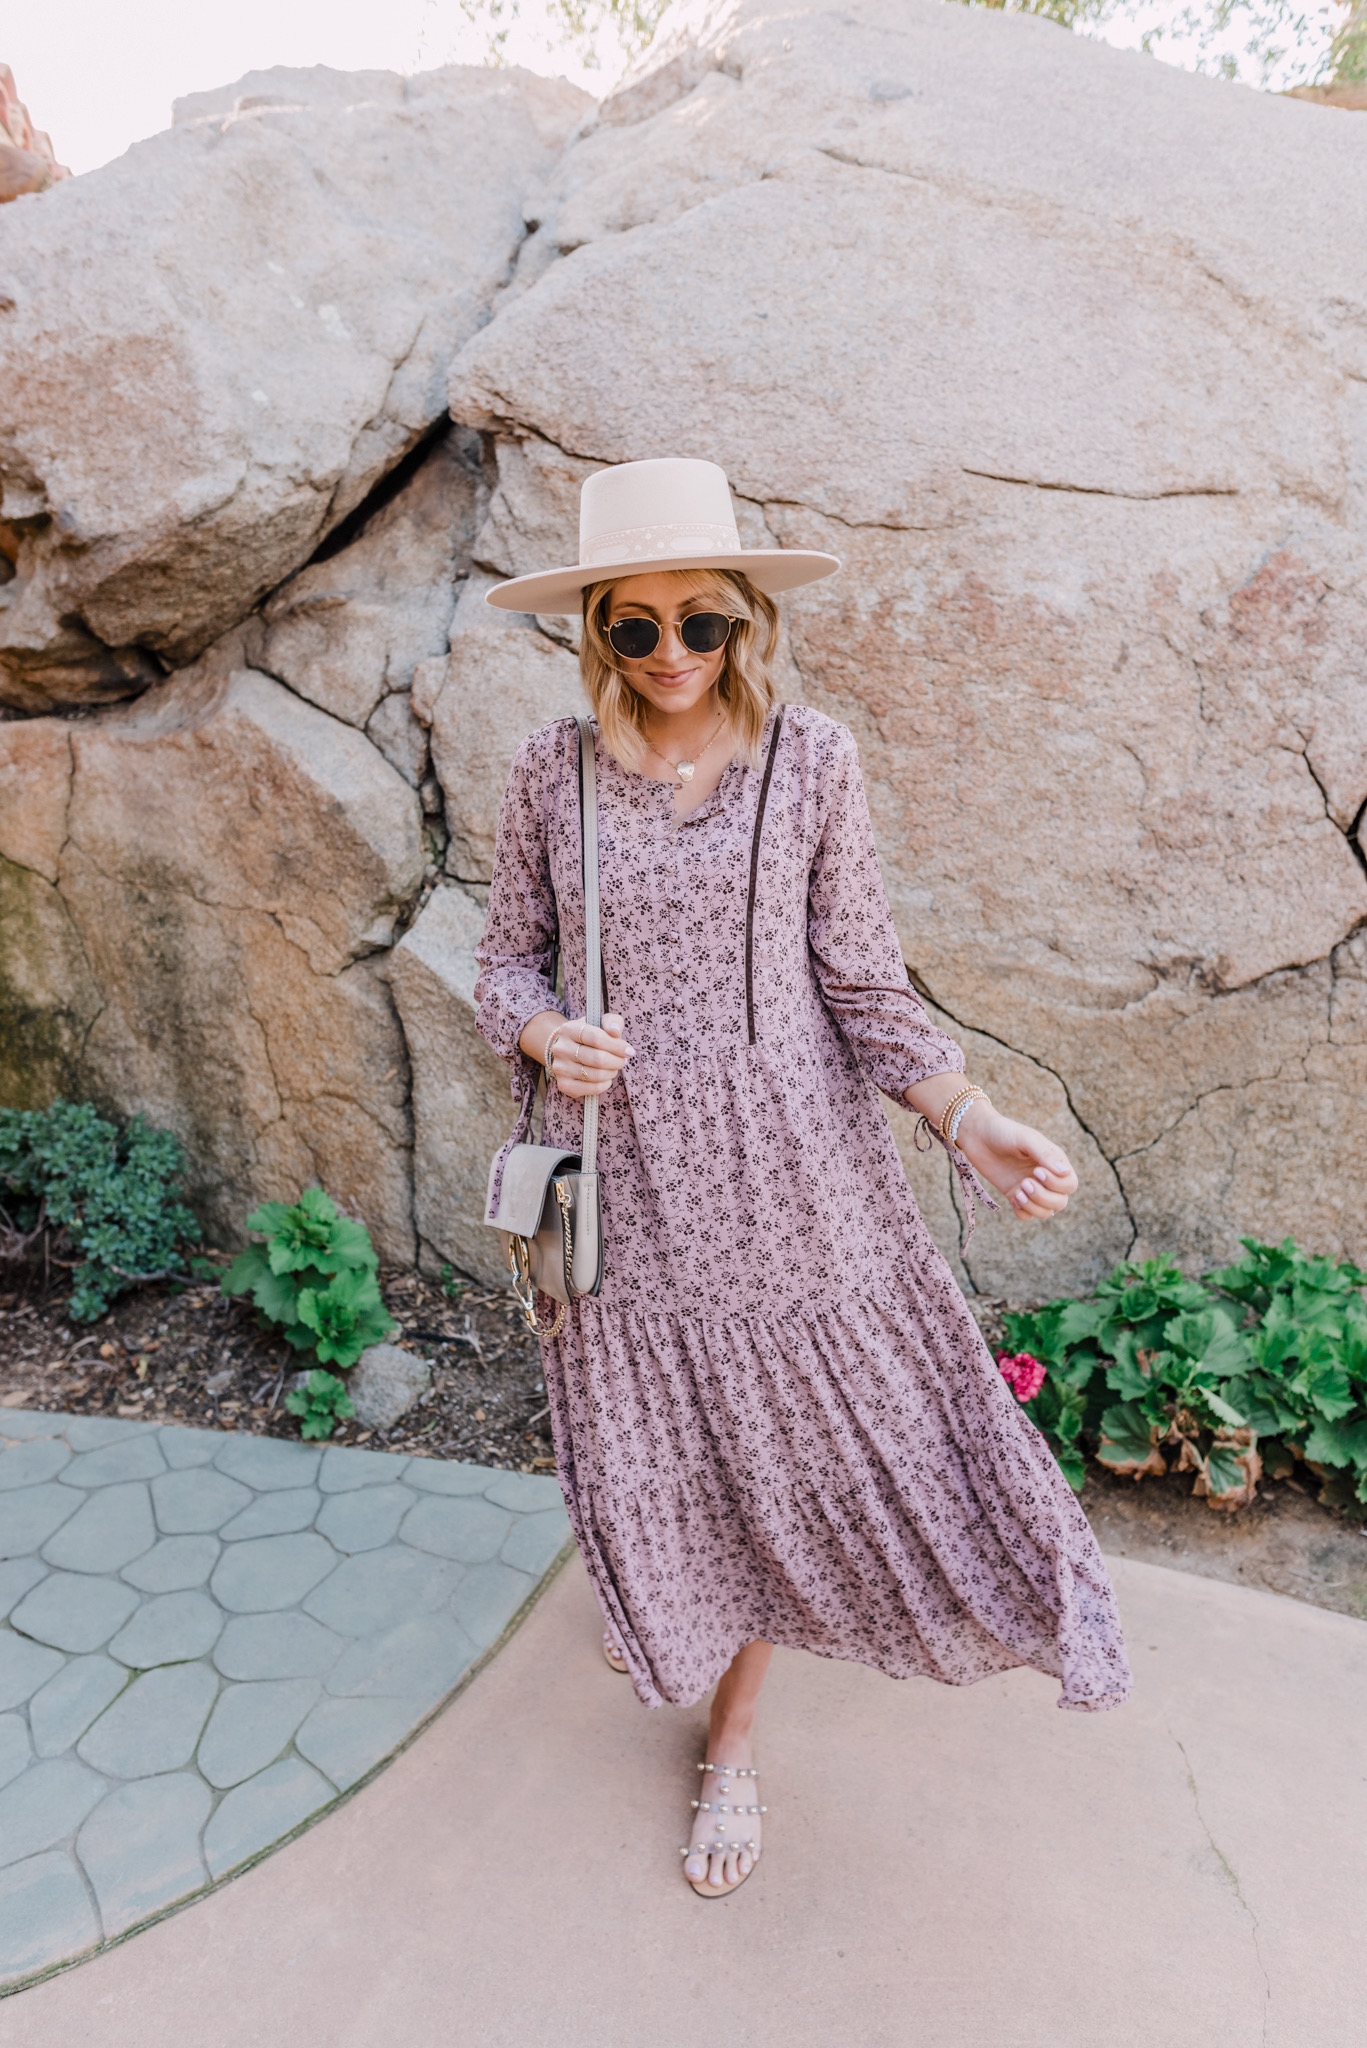 March Best Sellers by popular San Diego fashion blog, Navy Grace: image of a woman wearing a Free People Sierra Boater Hat, ShopBop Madewell Tiered Midi Dress, Nordstrom Icons 50mm Round Metal Sunglasses RAY-BAN, studded slide sandals, and Nordstrom Small Matelassé Leather Shoulder Bag GUCCI